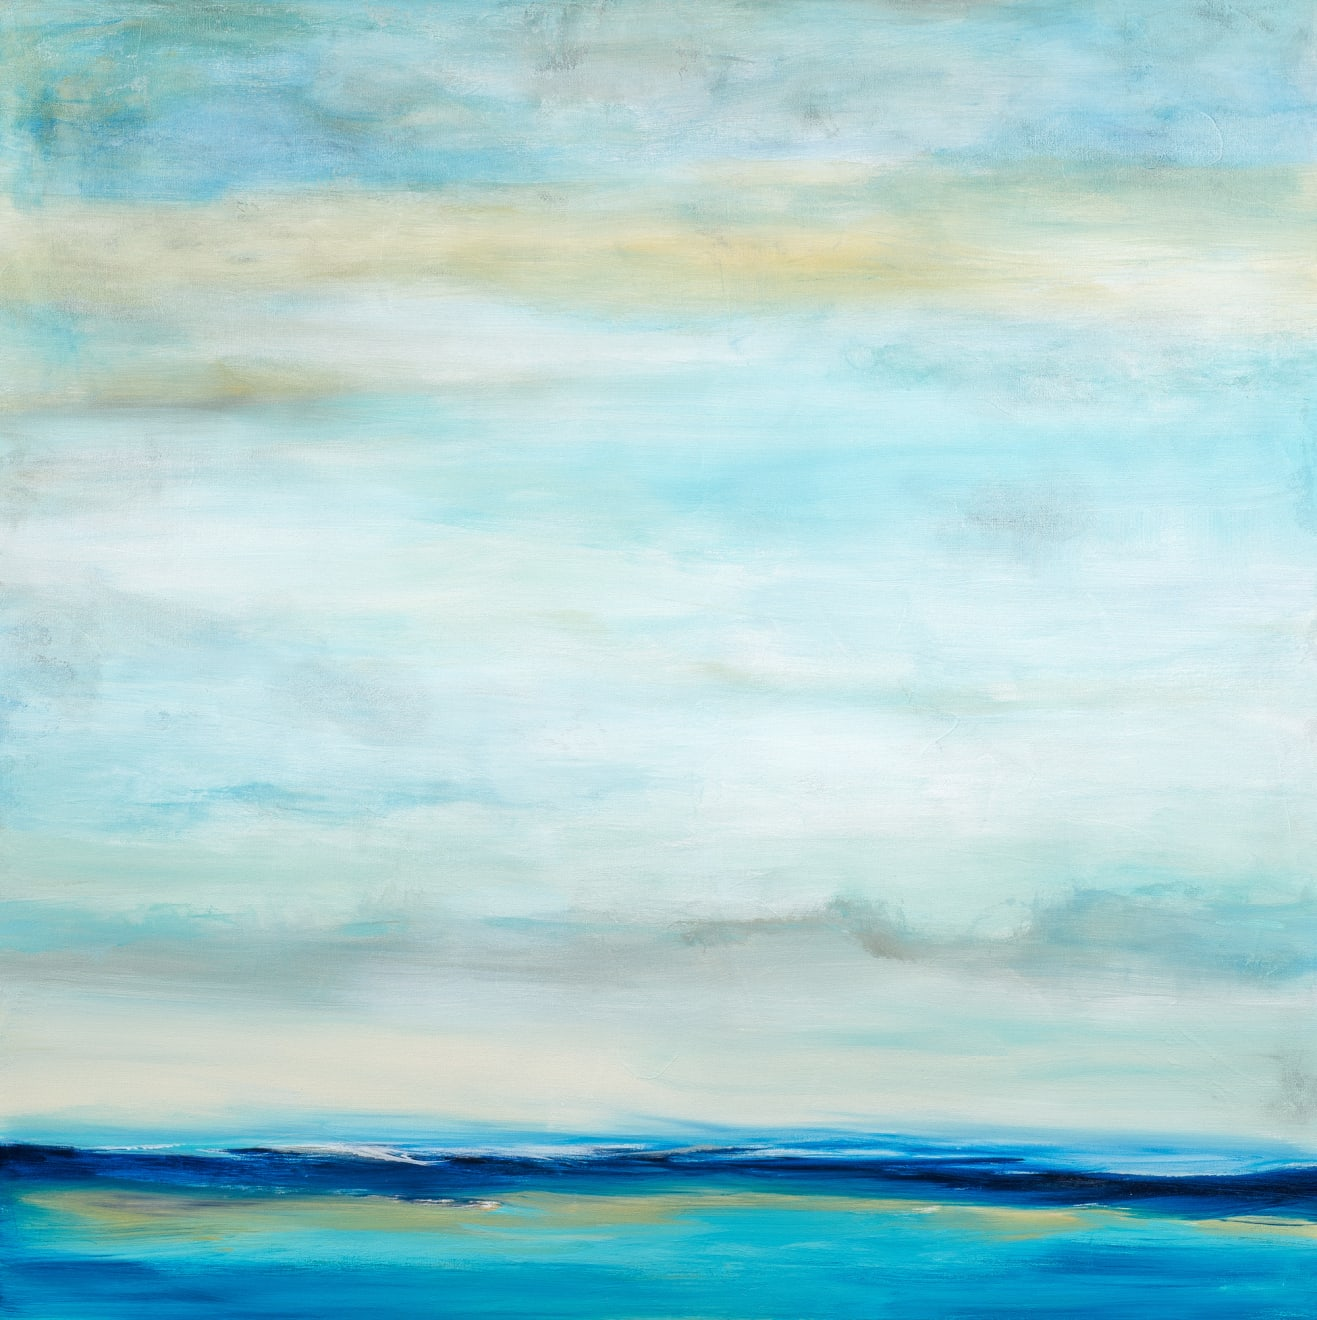 Patricia Qualls, Seascape, 2020